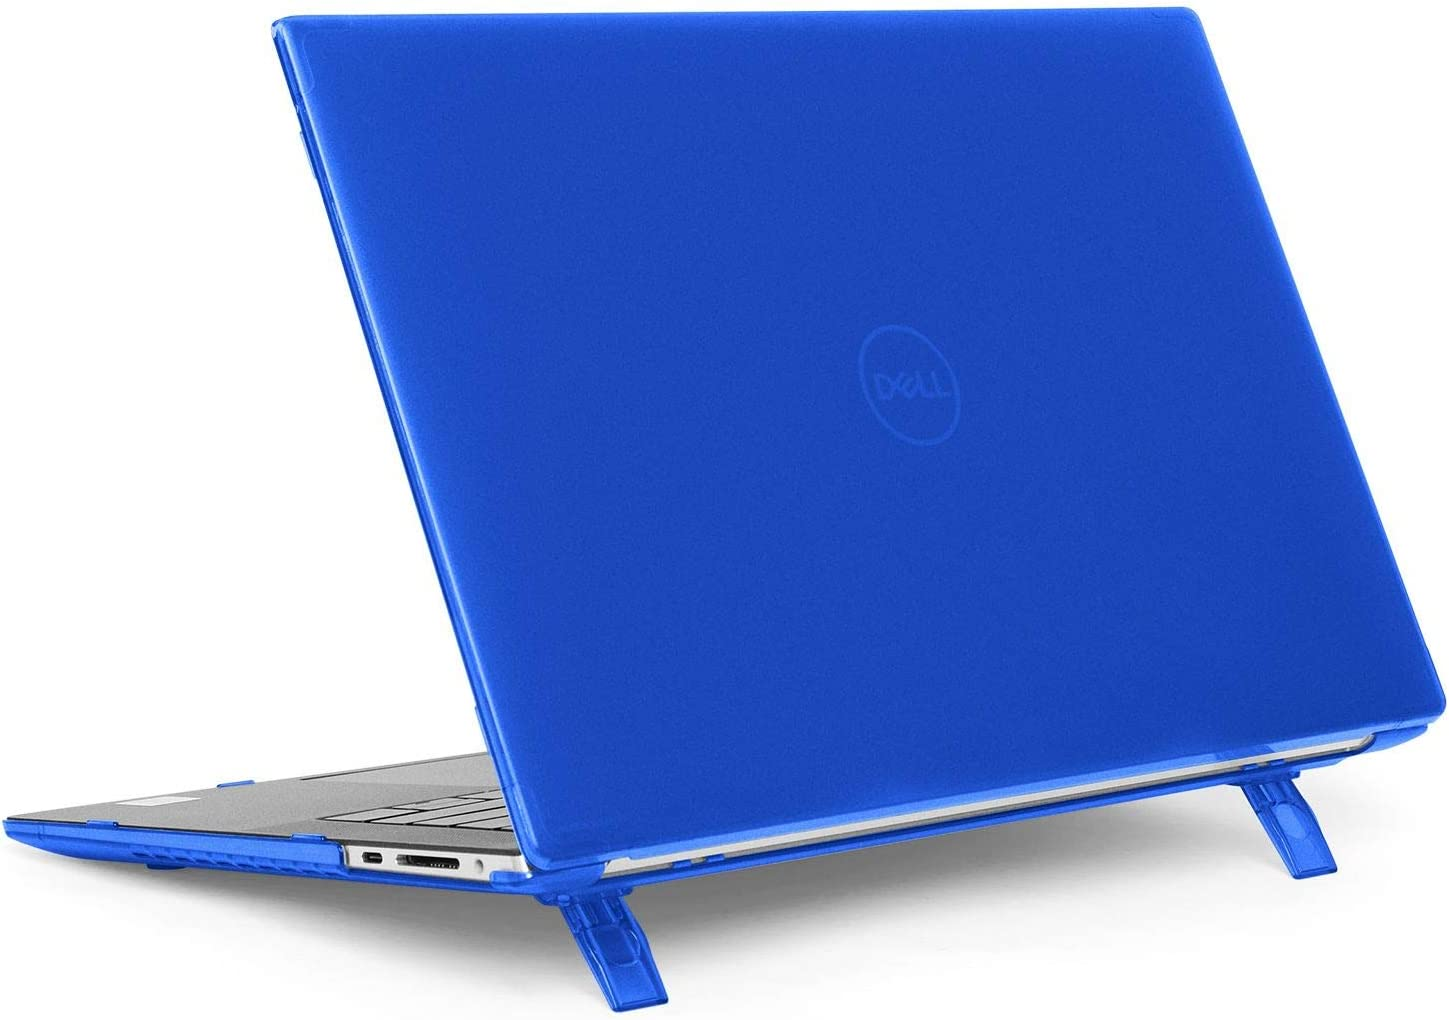 "mCover Hard Shell CASE for New 2020 15.6"" Dell XPS 15 9500 / Precision 5550 Series Laptop Computer (Blue)"